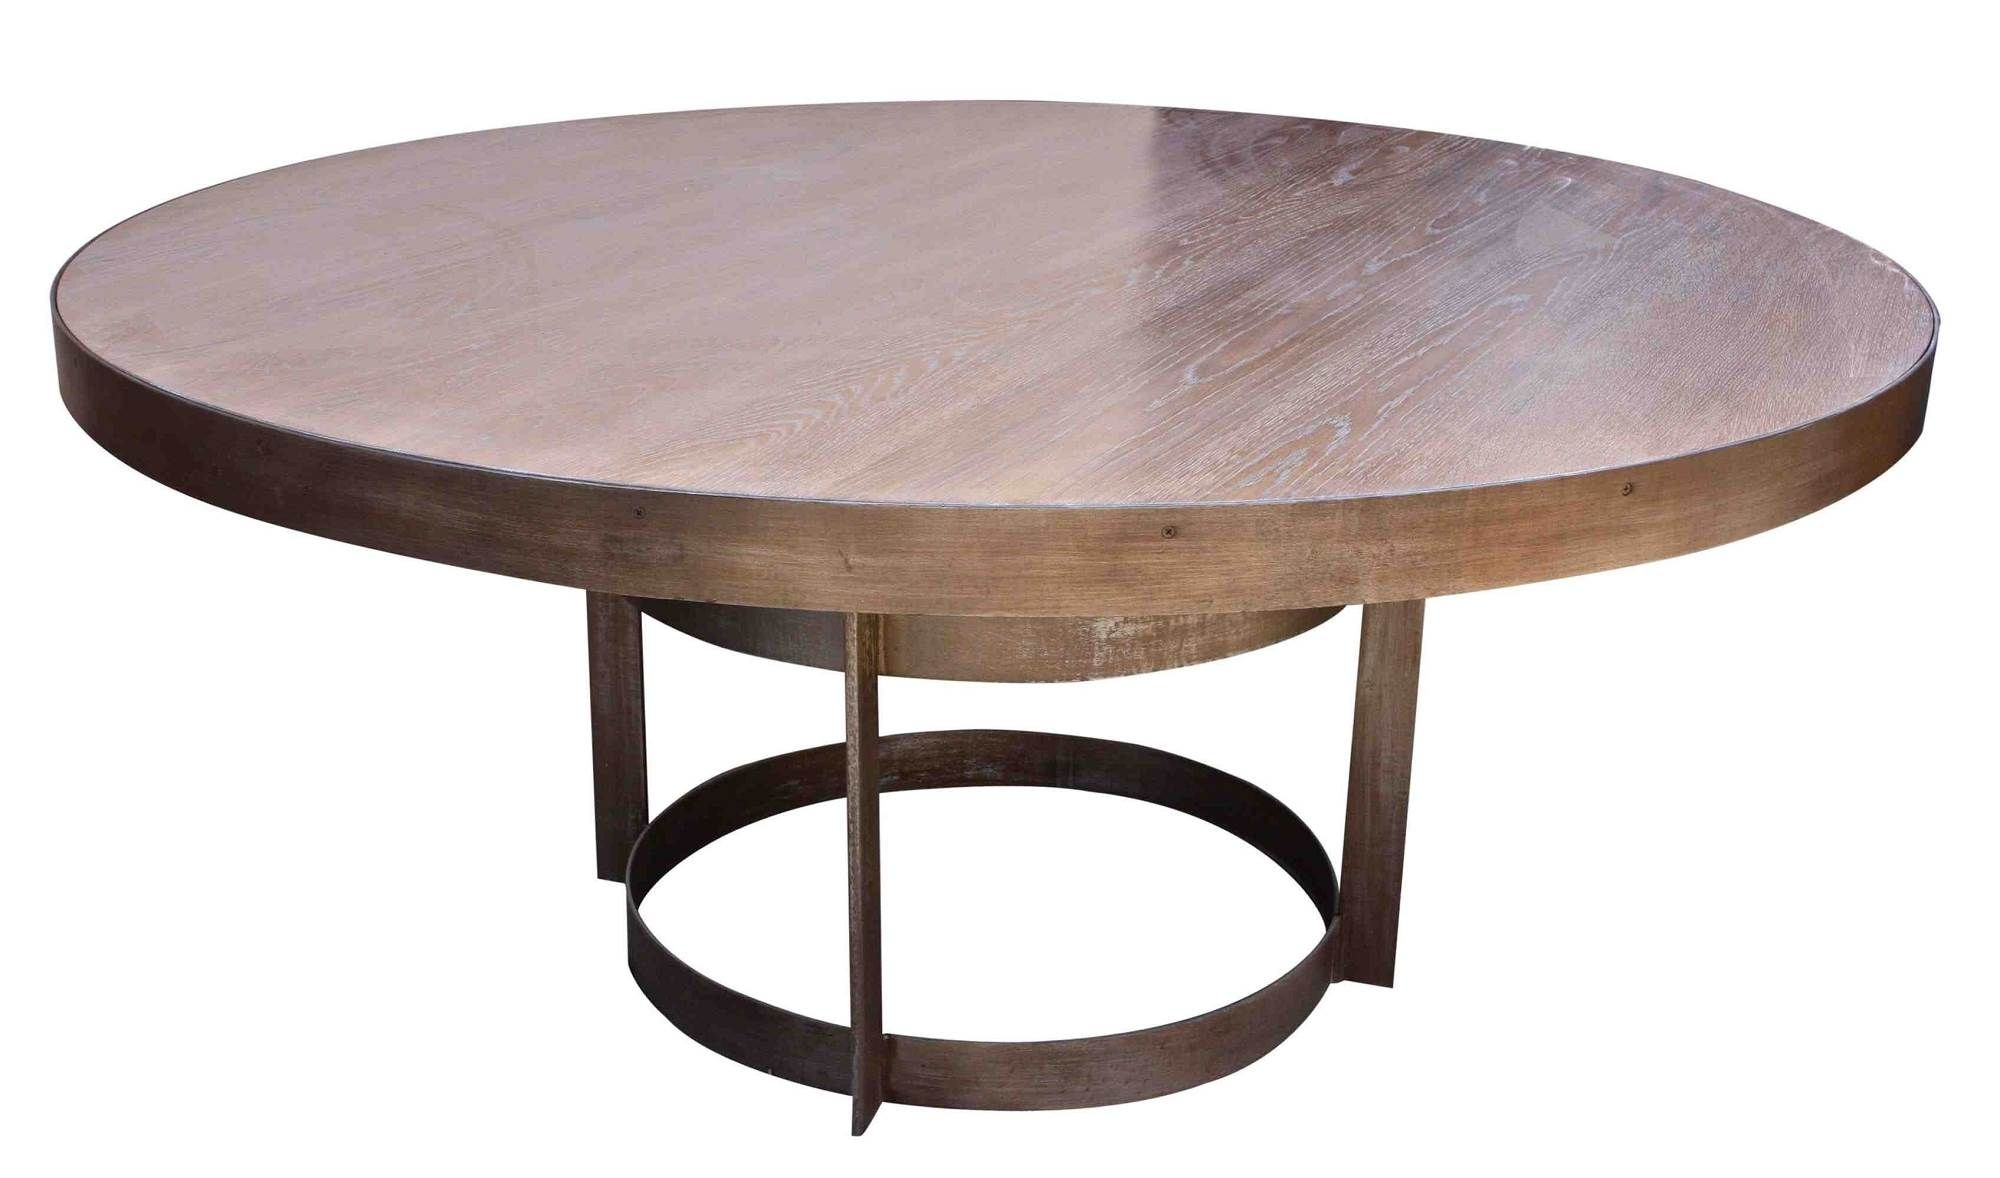 Round Dining Table With Leaves Httparghartscom - Round dining table with 2 leaves